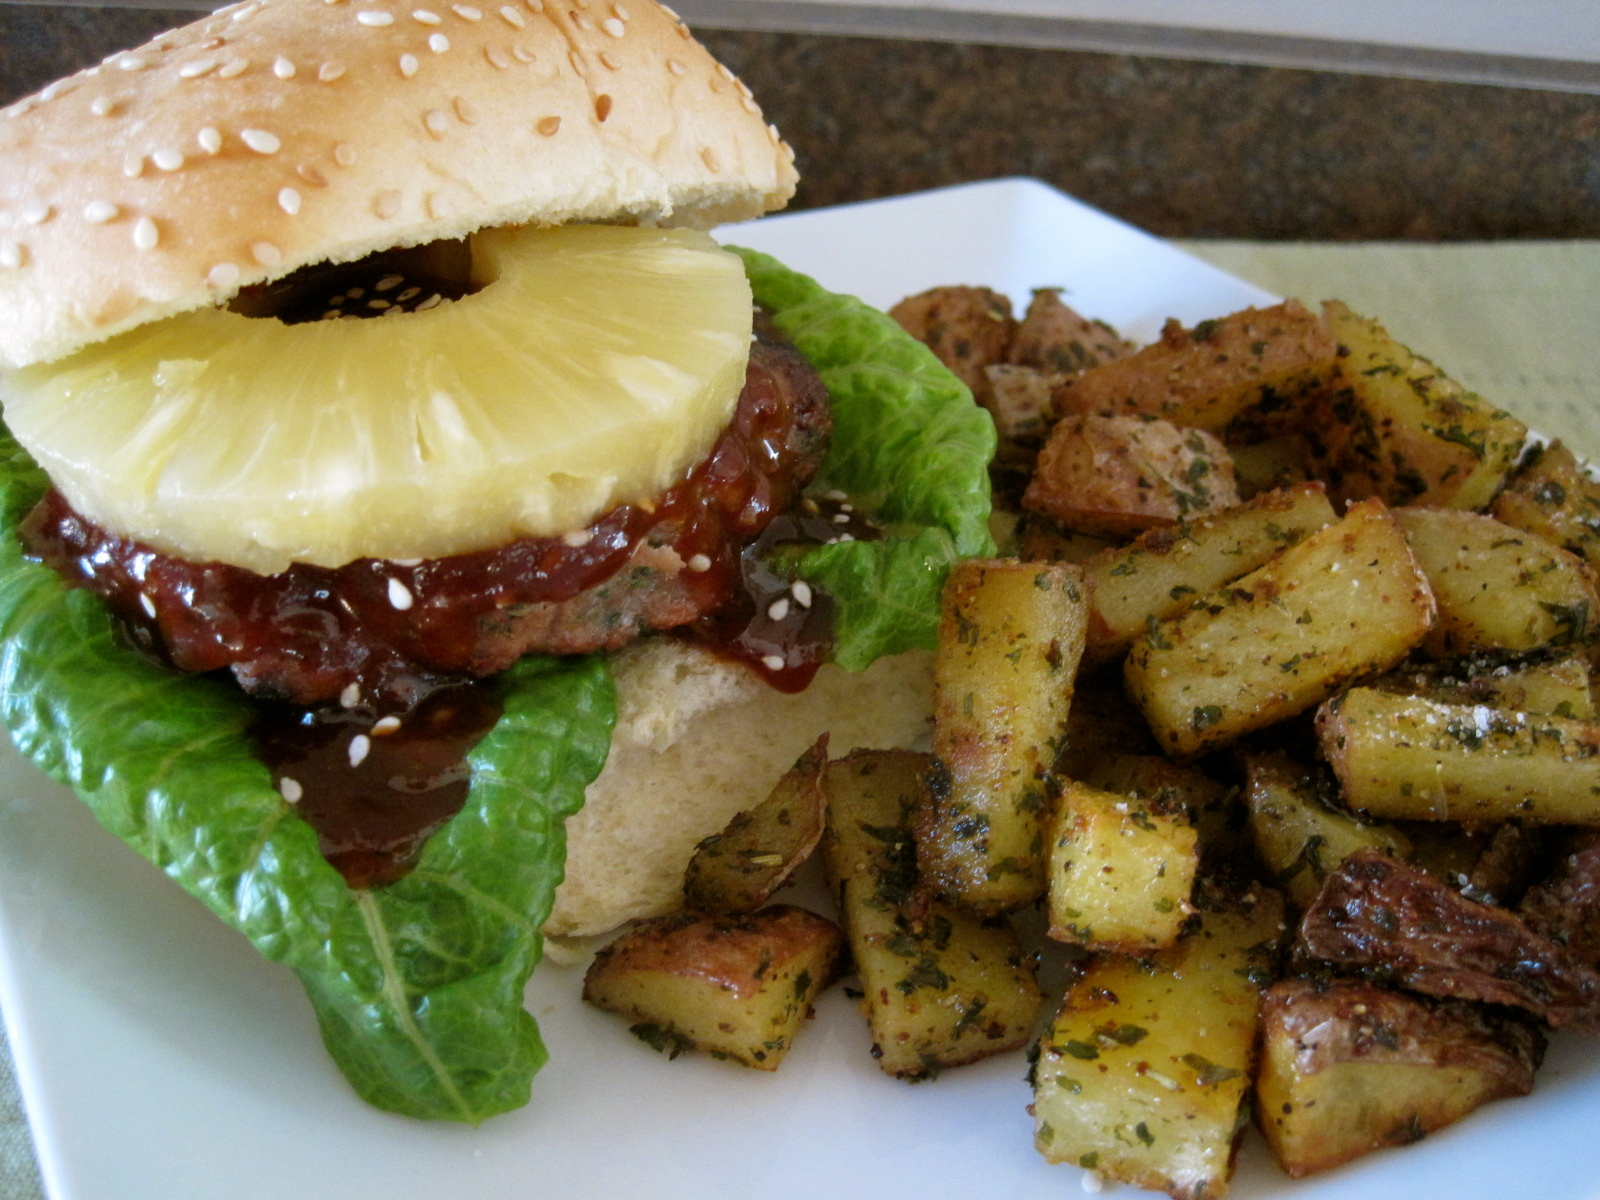 Mrs. Schwartz's Kitchen: Asian Turkey Burgers with Teriyaki BBQ Sauce